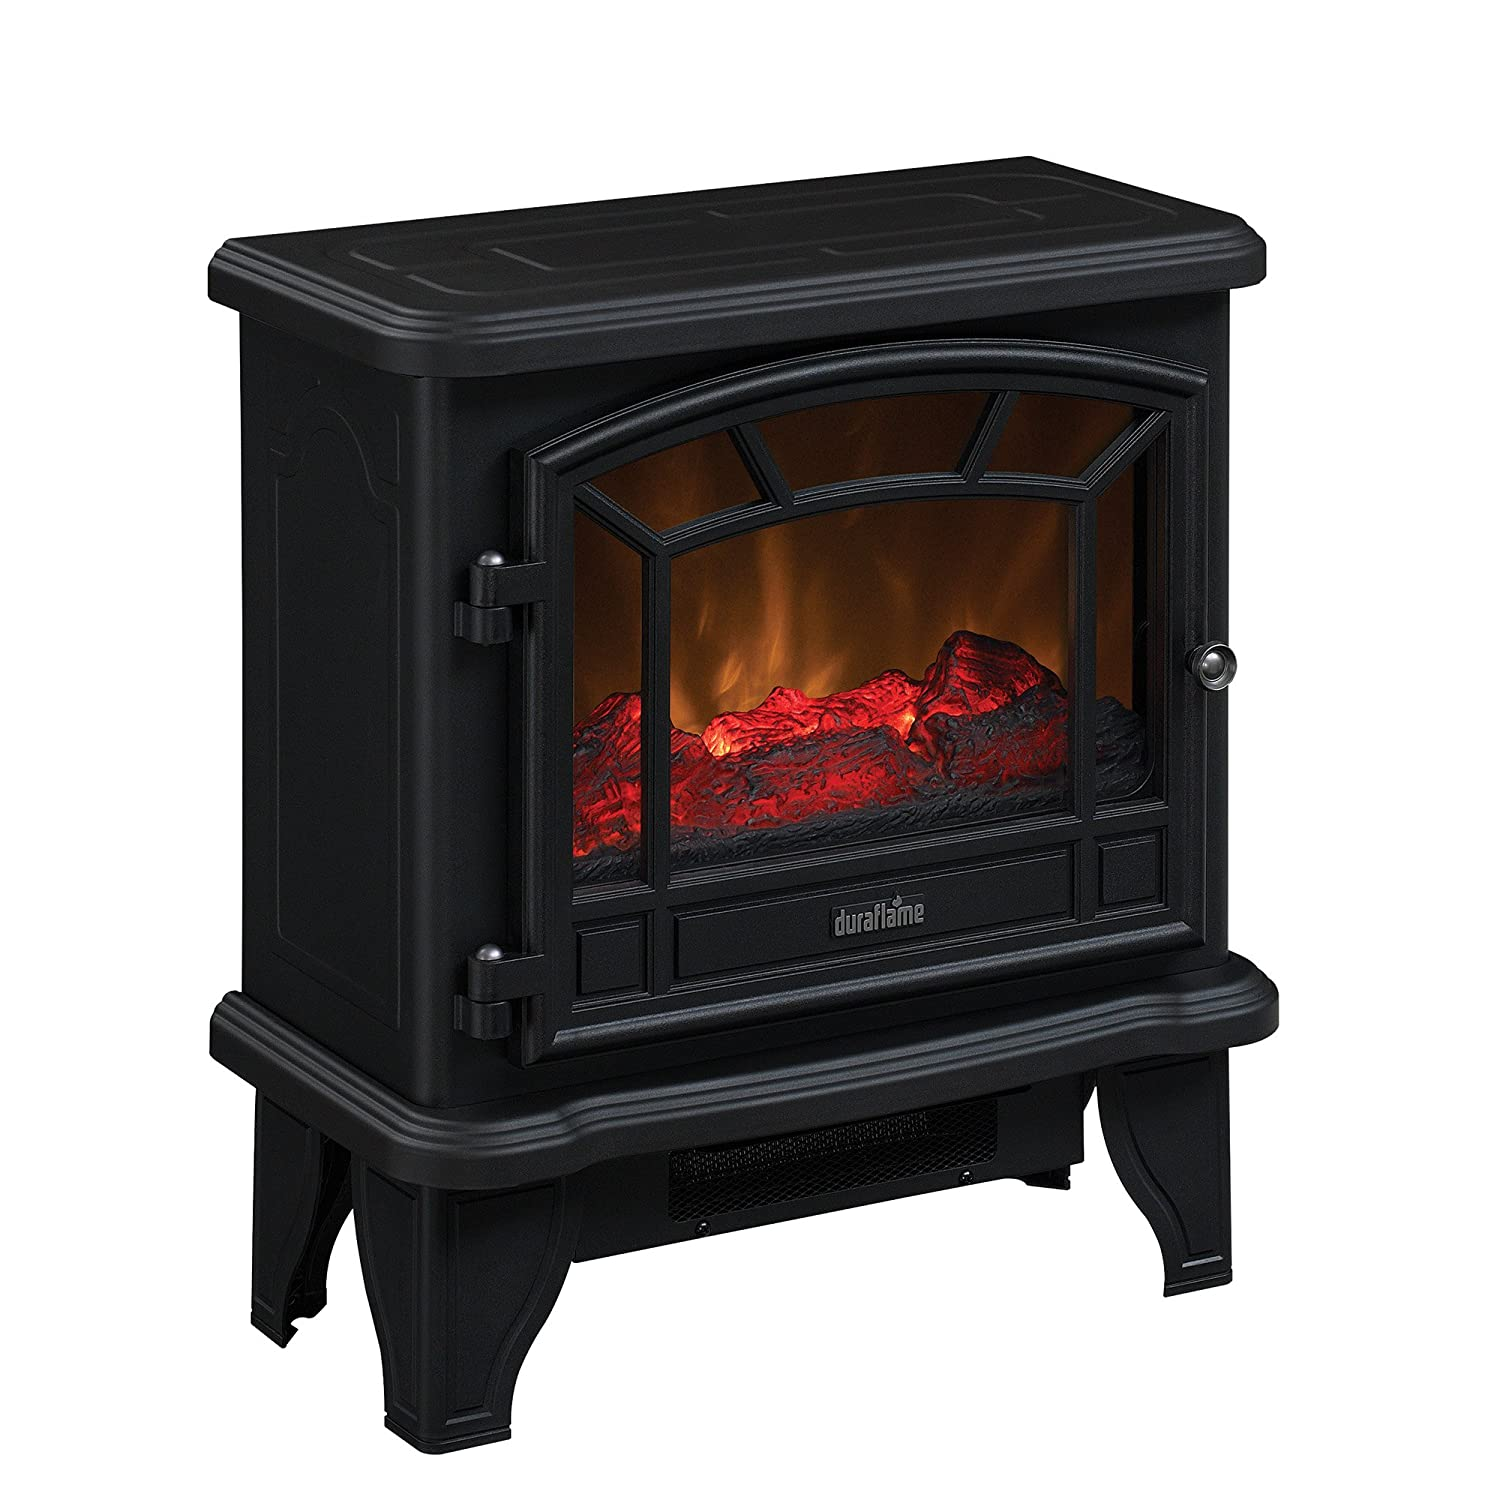 Amazon.com: Duraflame DFS-550-21-BLK Maxwell Electric Stove with Heater  1500W, Black: Home & Kitchen